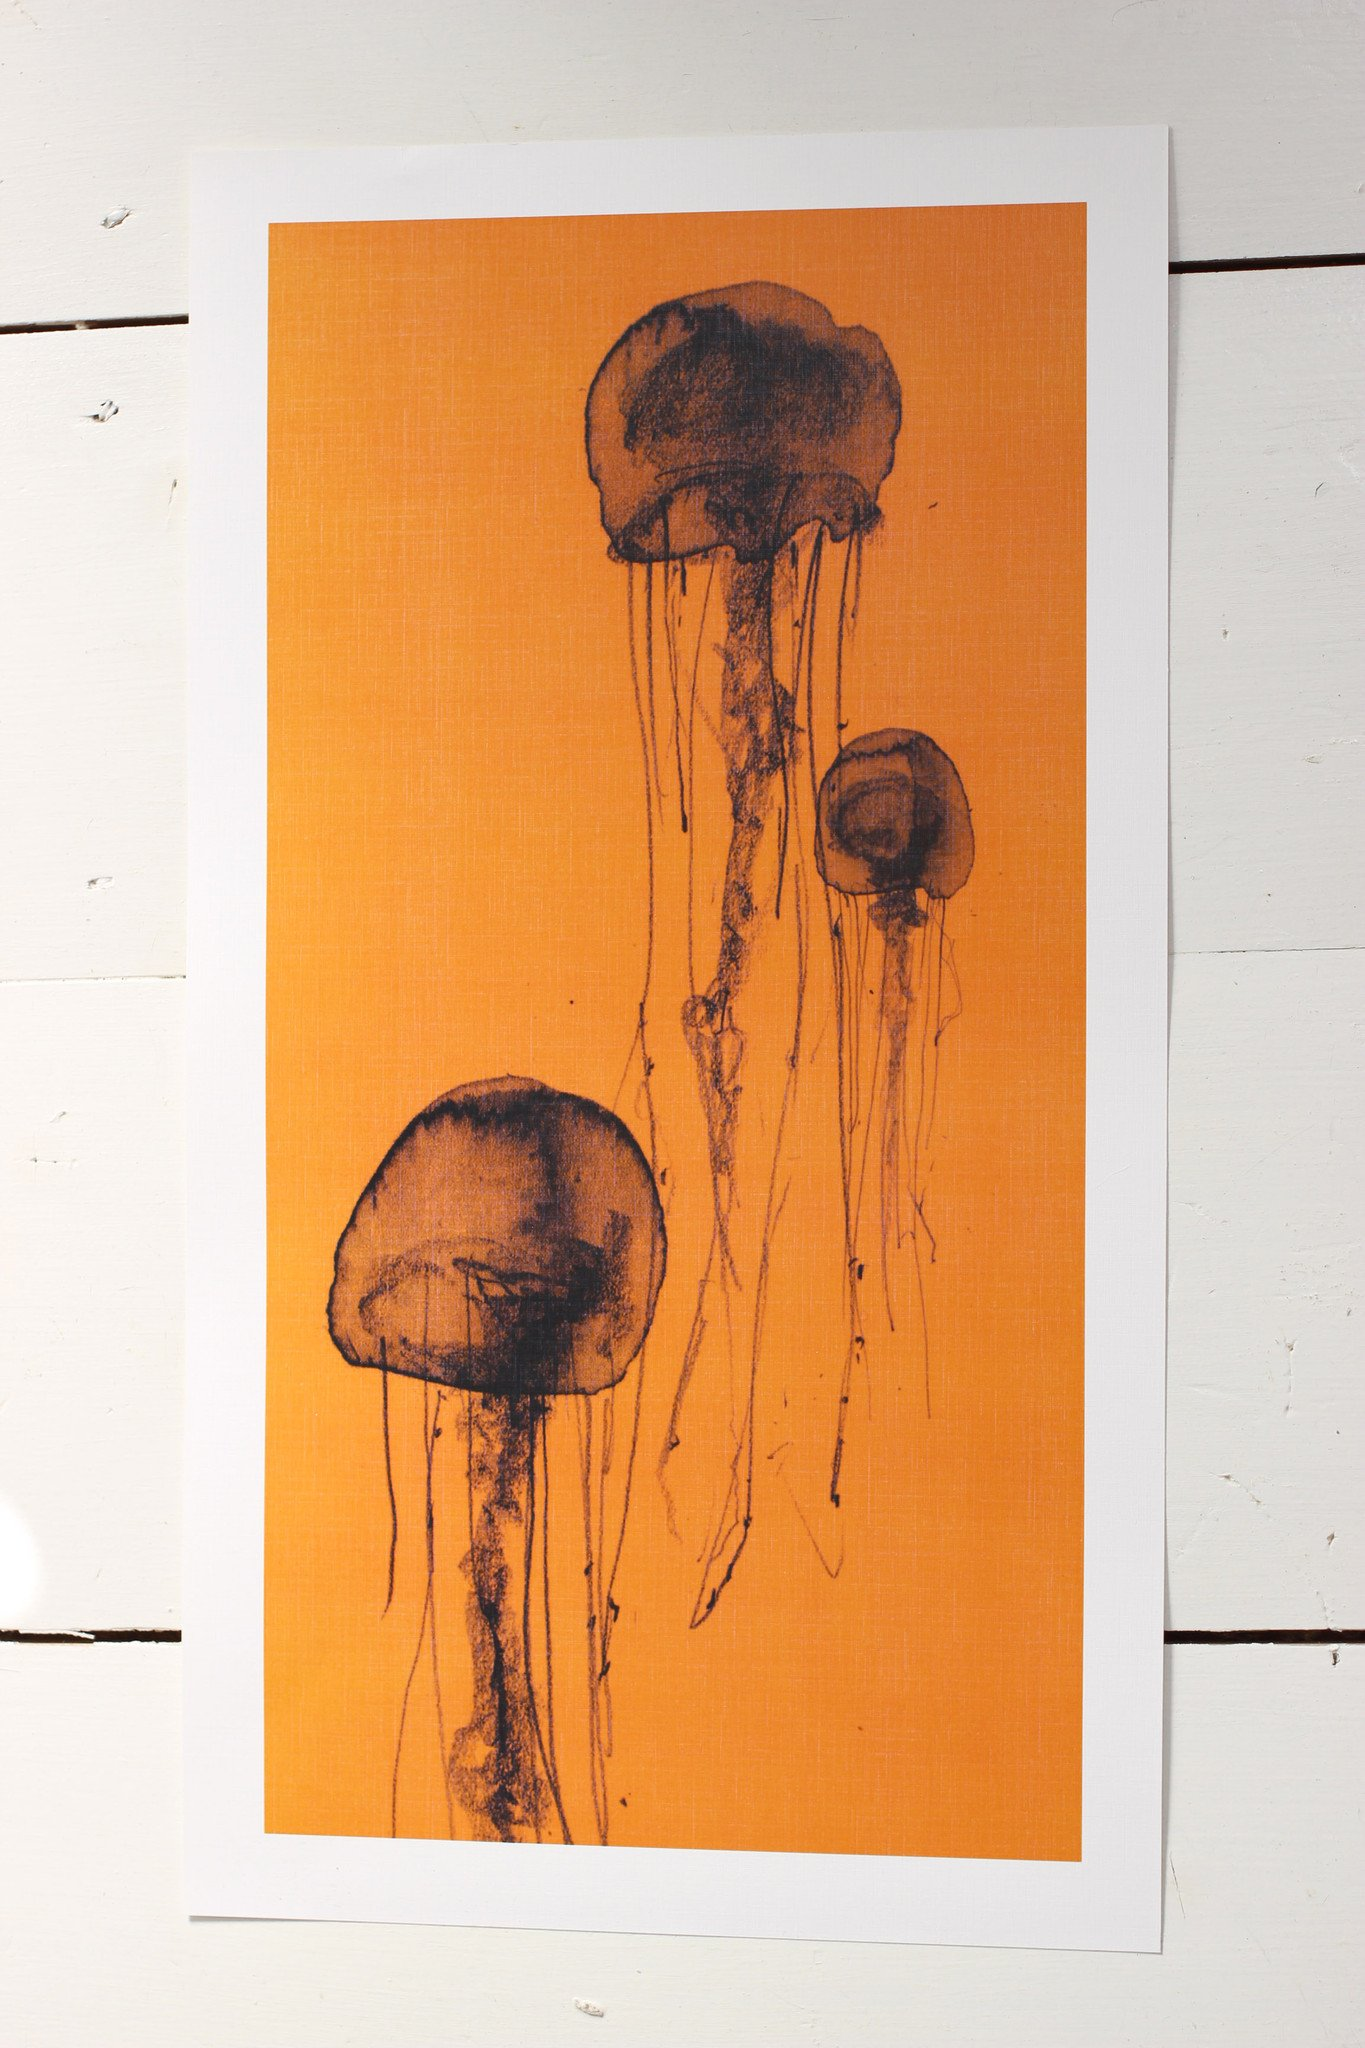 April_and_the_Bear_Orange_Jellyfish_Print_50_2048x2048.jpg